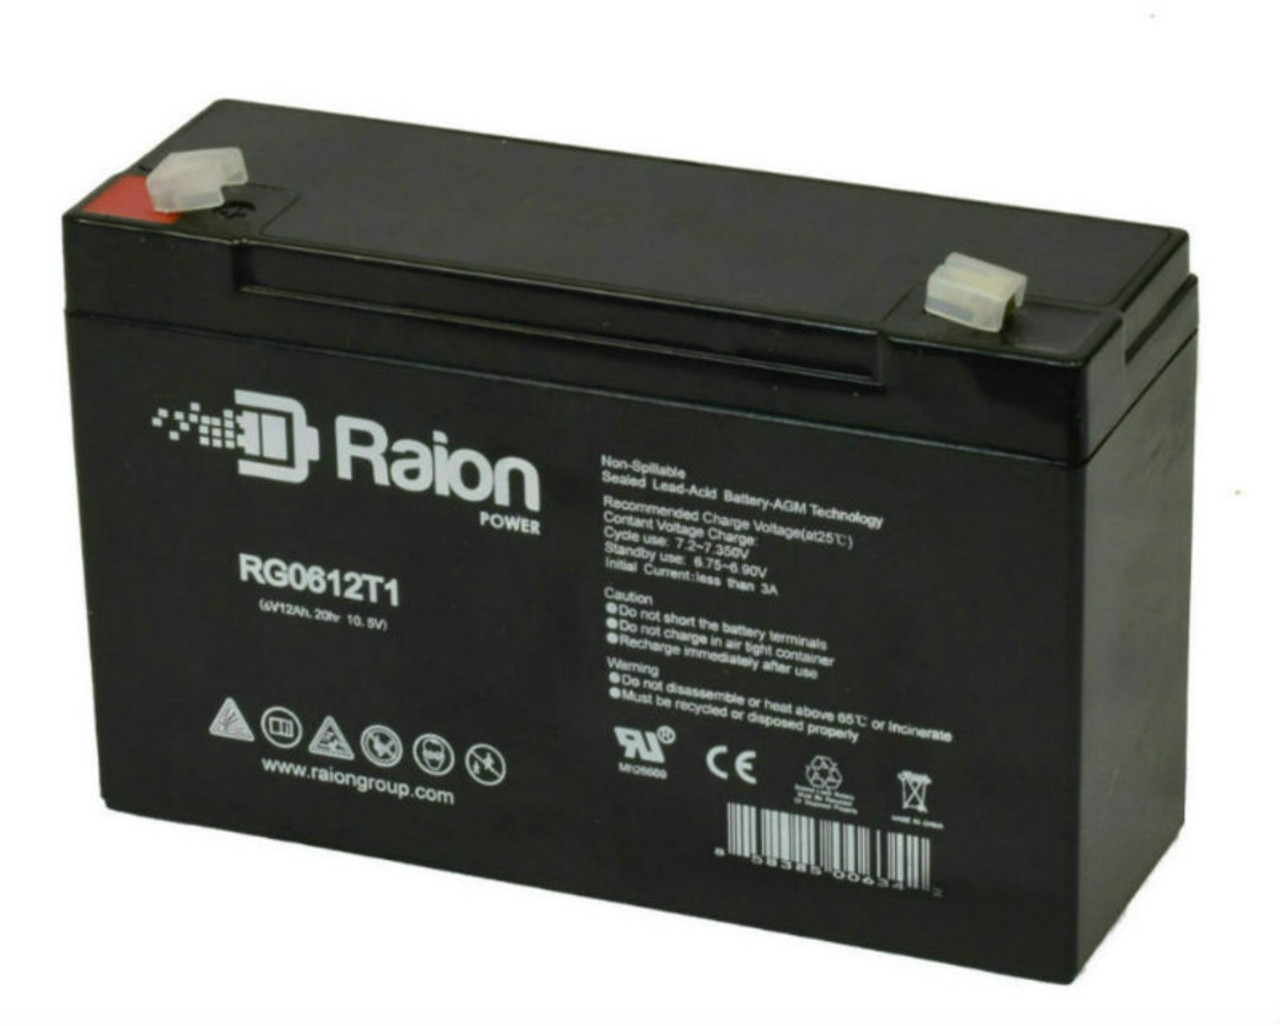 Raion Power RG06120T1 Replacement Battery Pack for Sure-Lites SWV36 emergency light